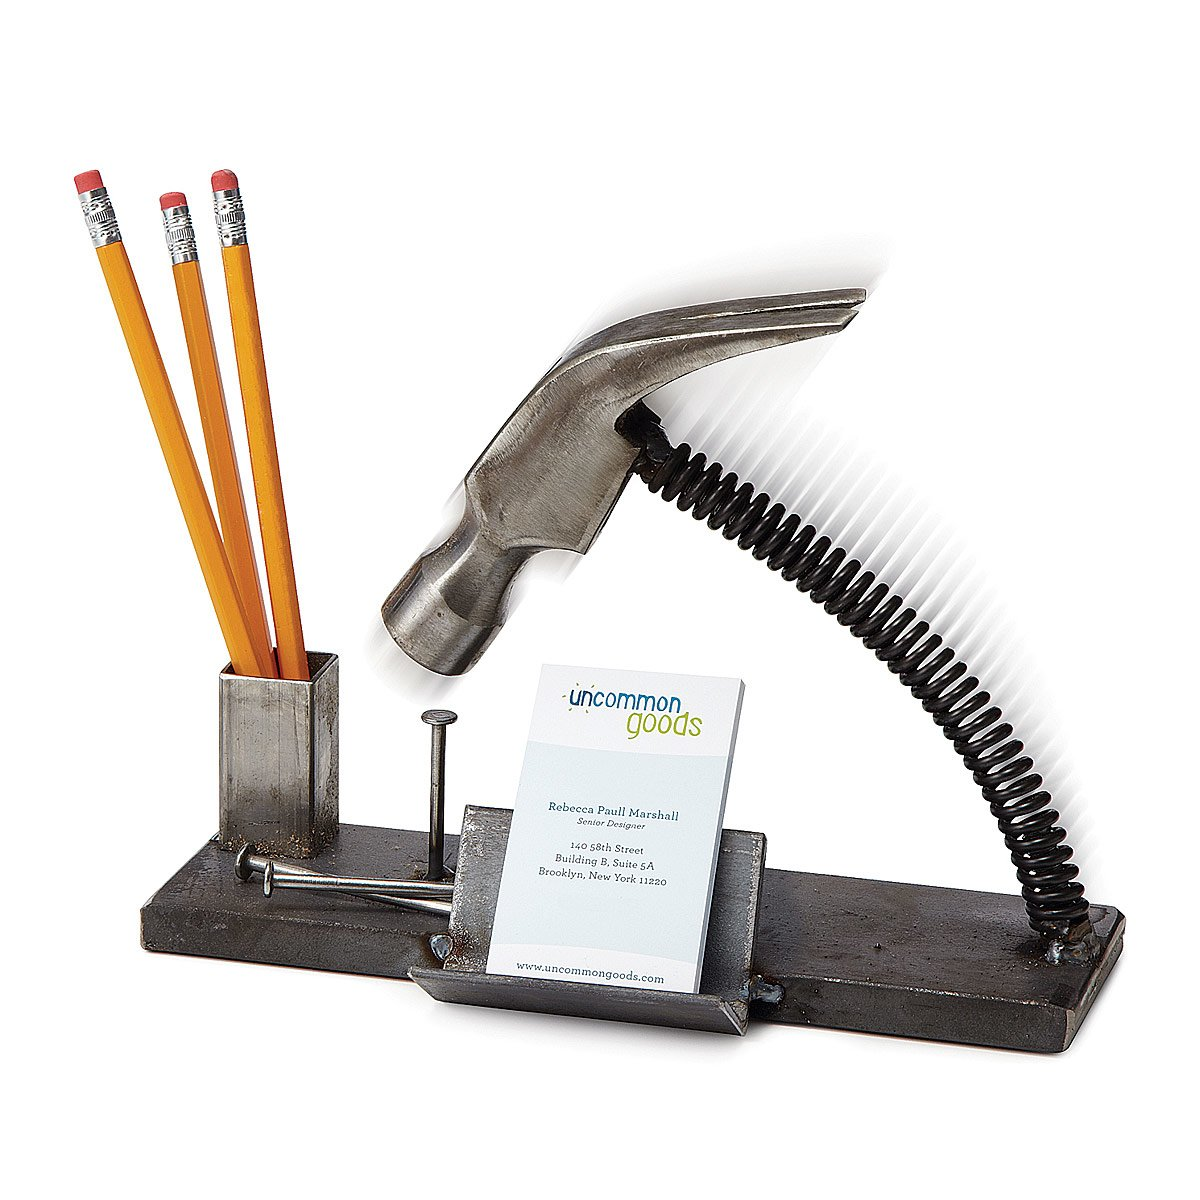 nailed it desk organizer | funny office art | uncommongoods